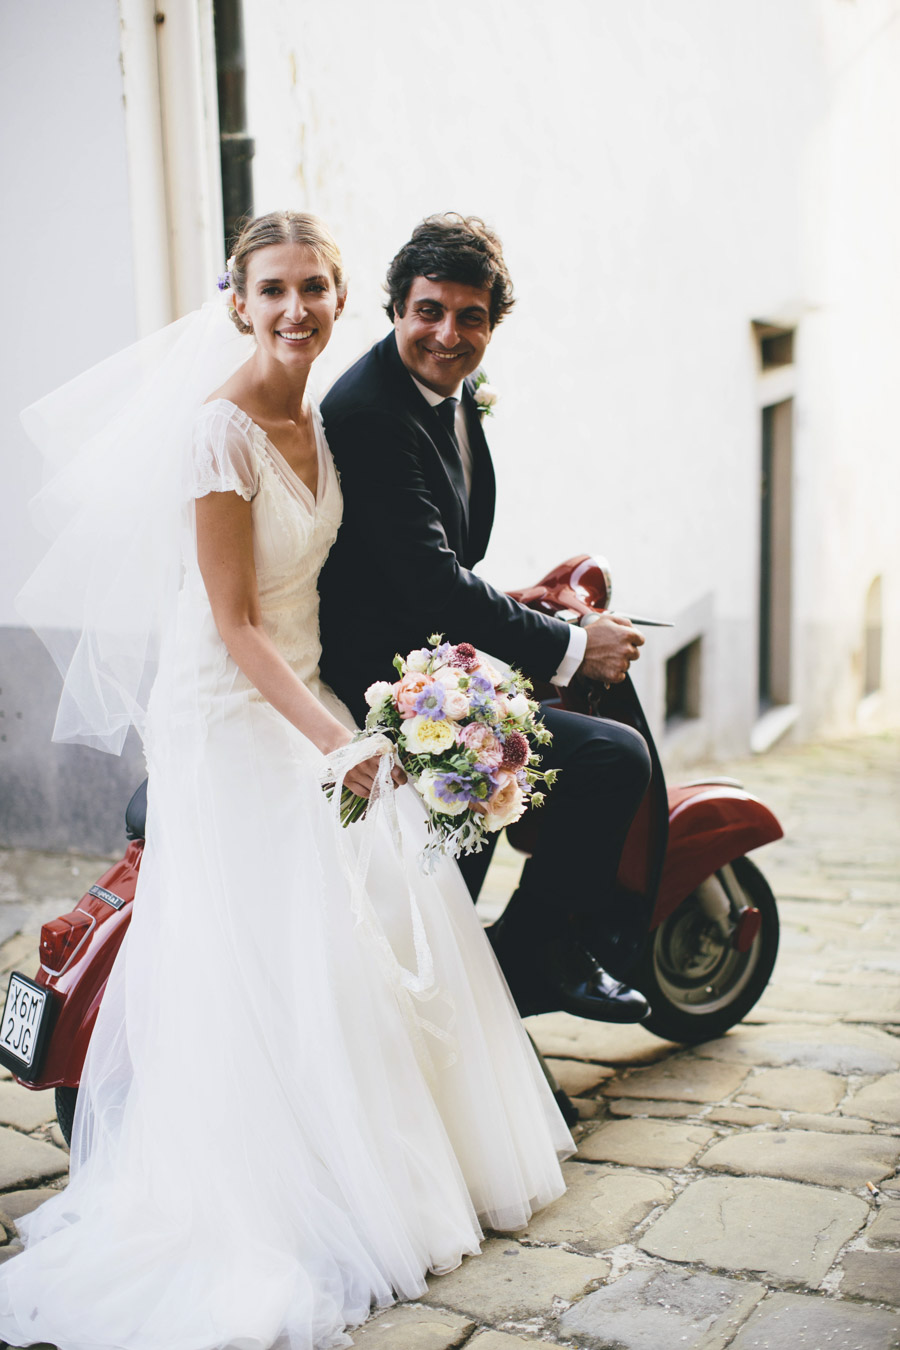 Benedetta + Marco Destination Wedding in Tuscany